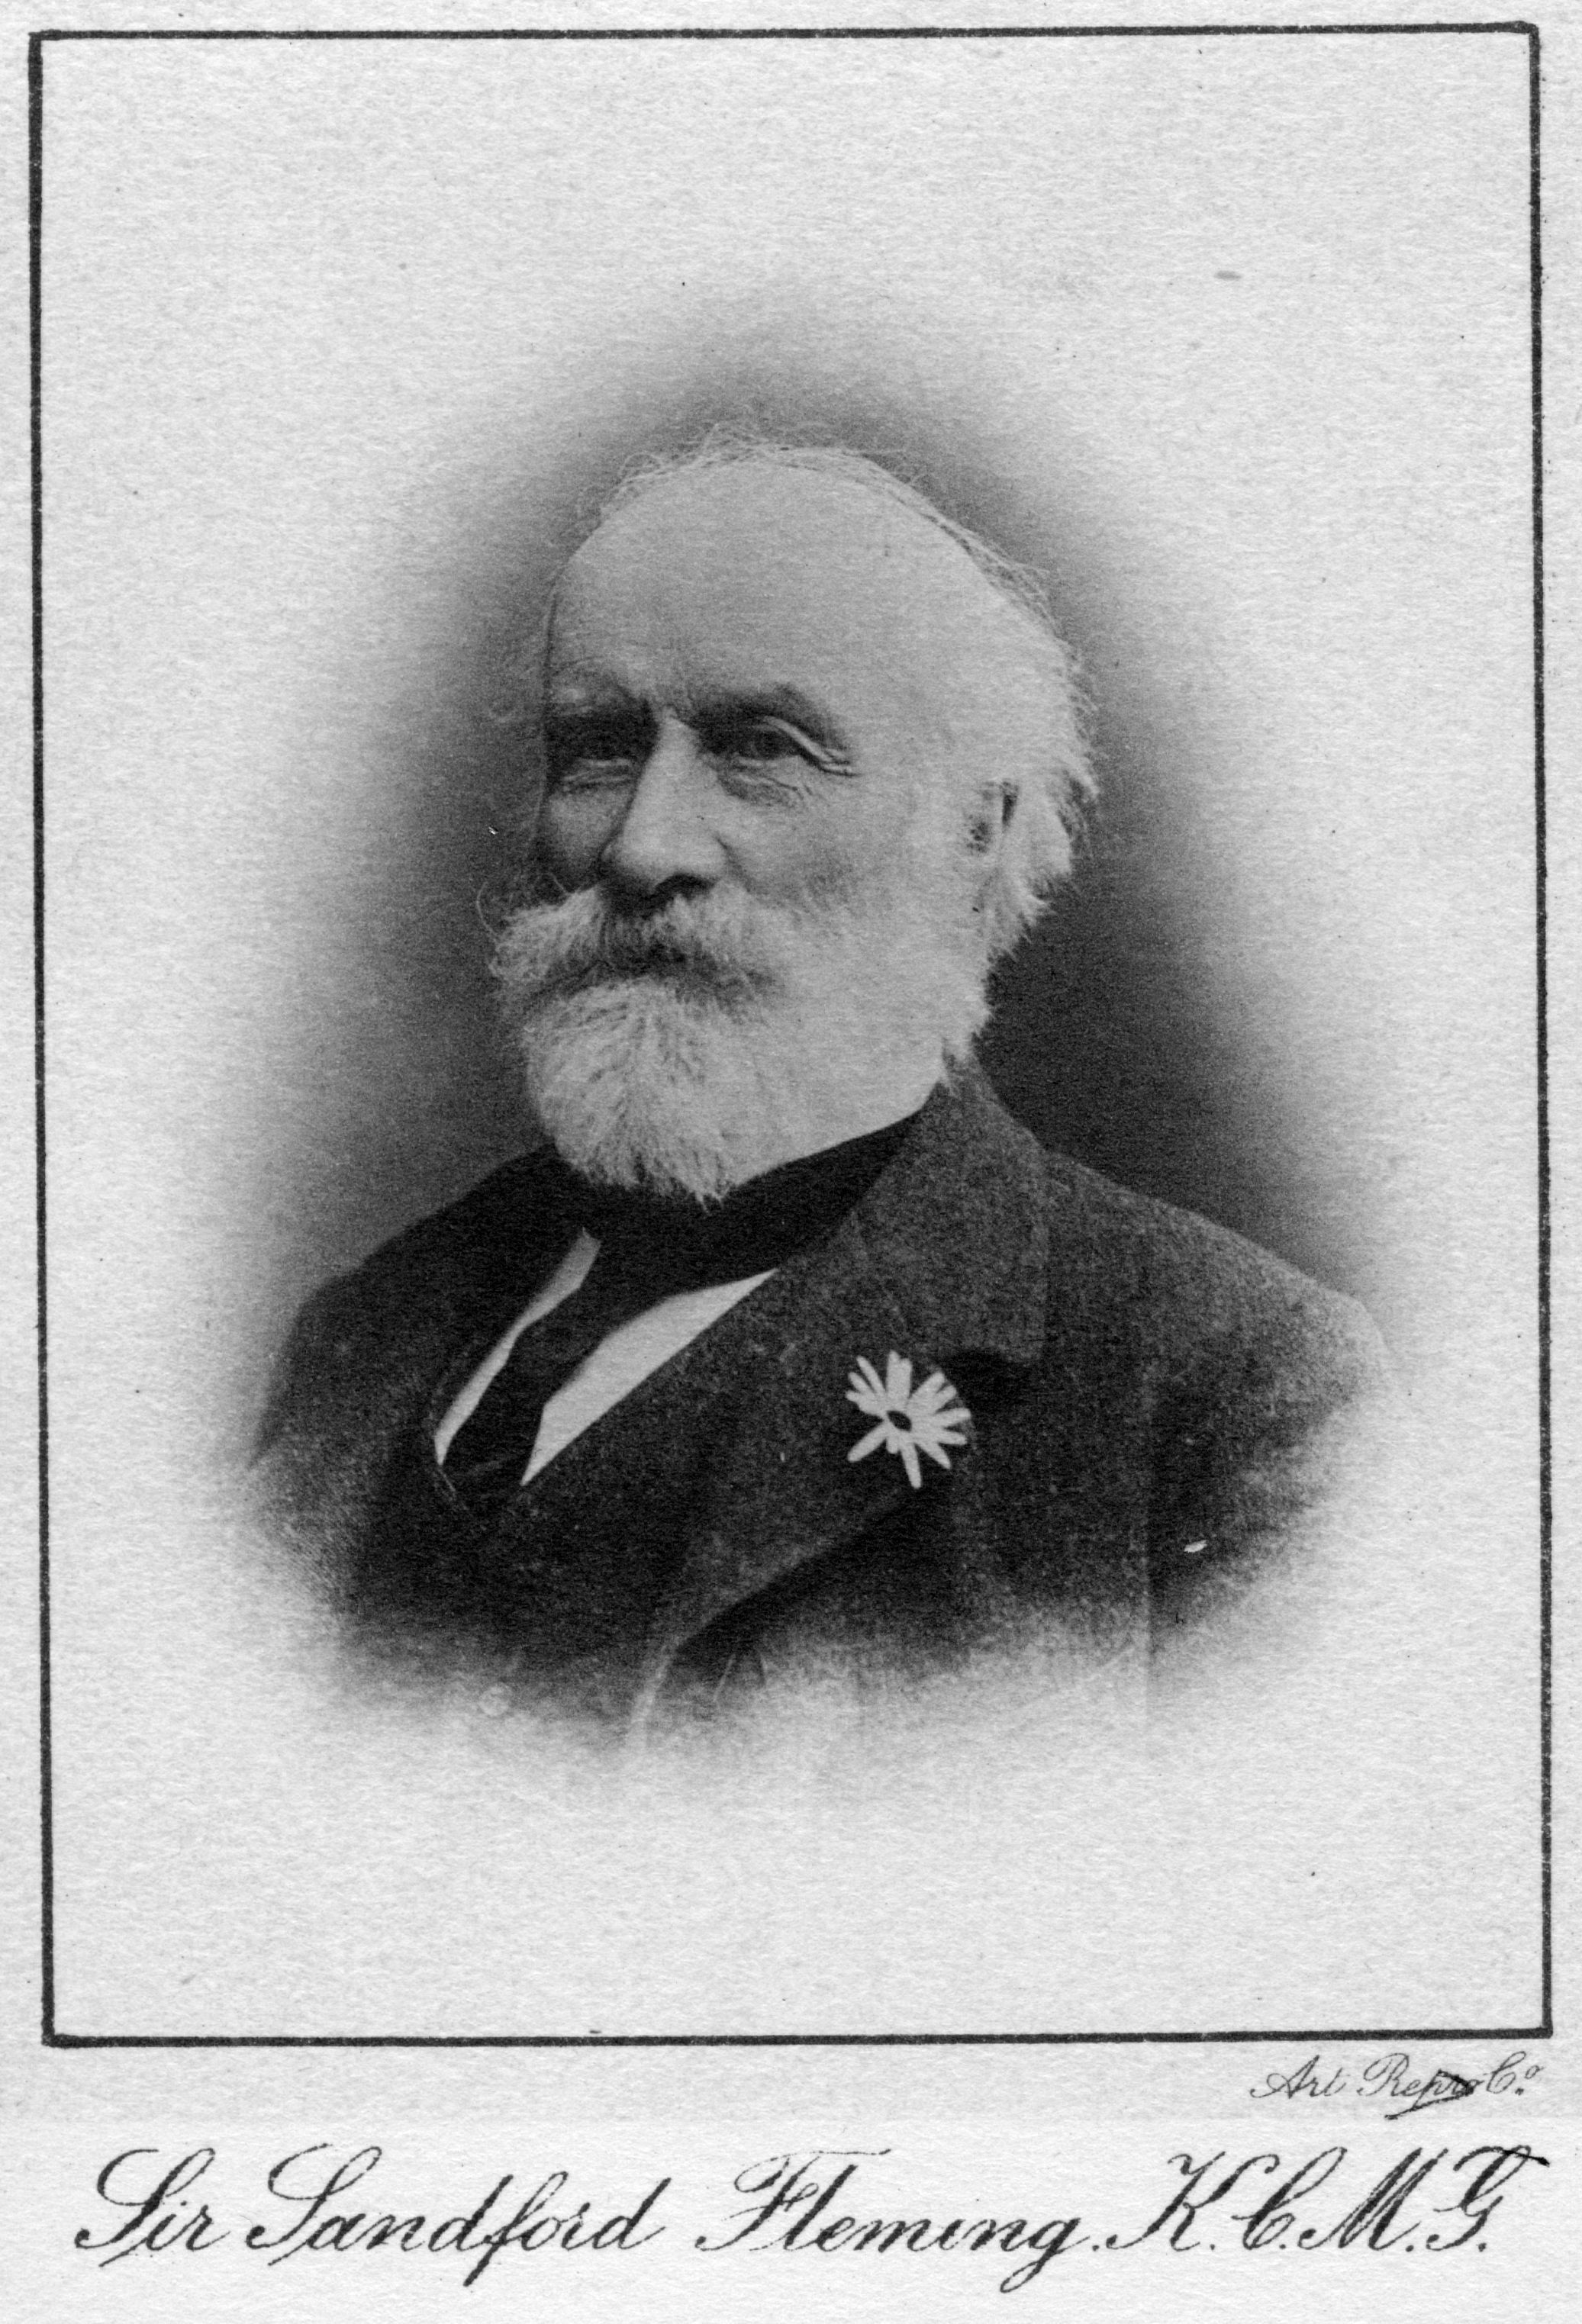 account of the life and accomplishments of sir sandford fleming A man of his time (67 k) when sandford fleming was born in 1827, the world's first railway line had just been built in great britain in the course of his lifetime.